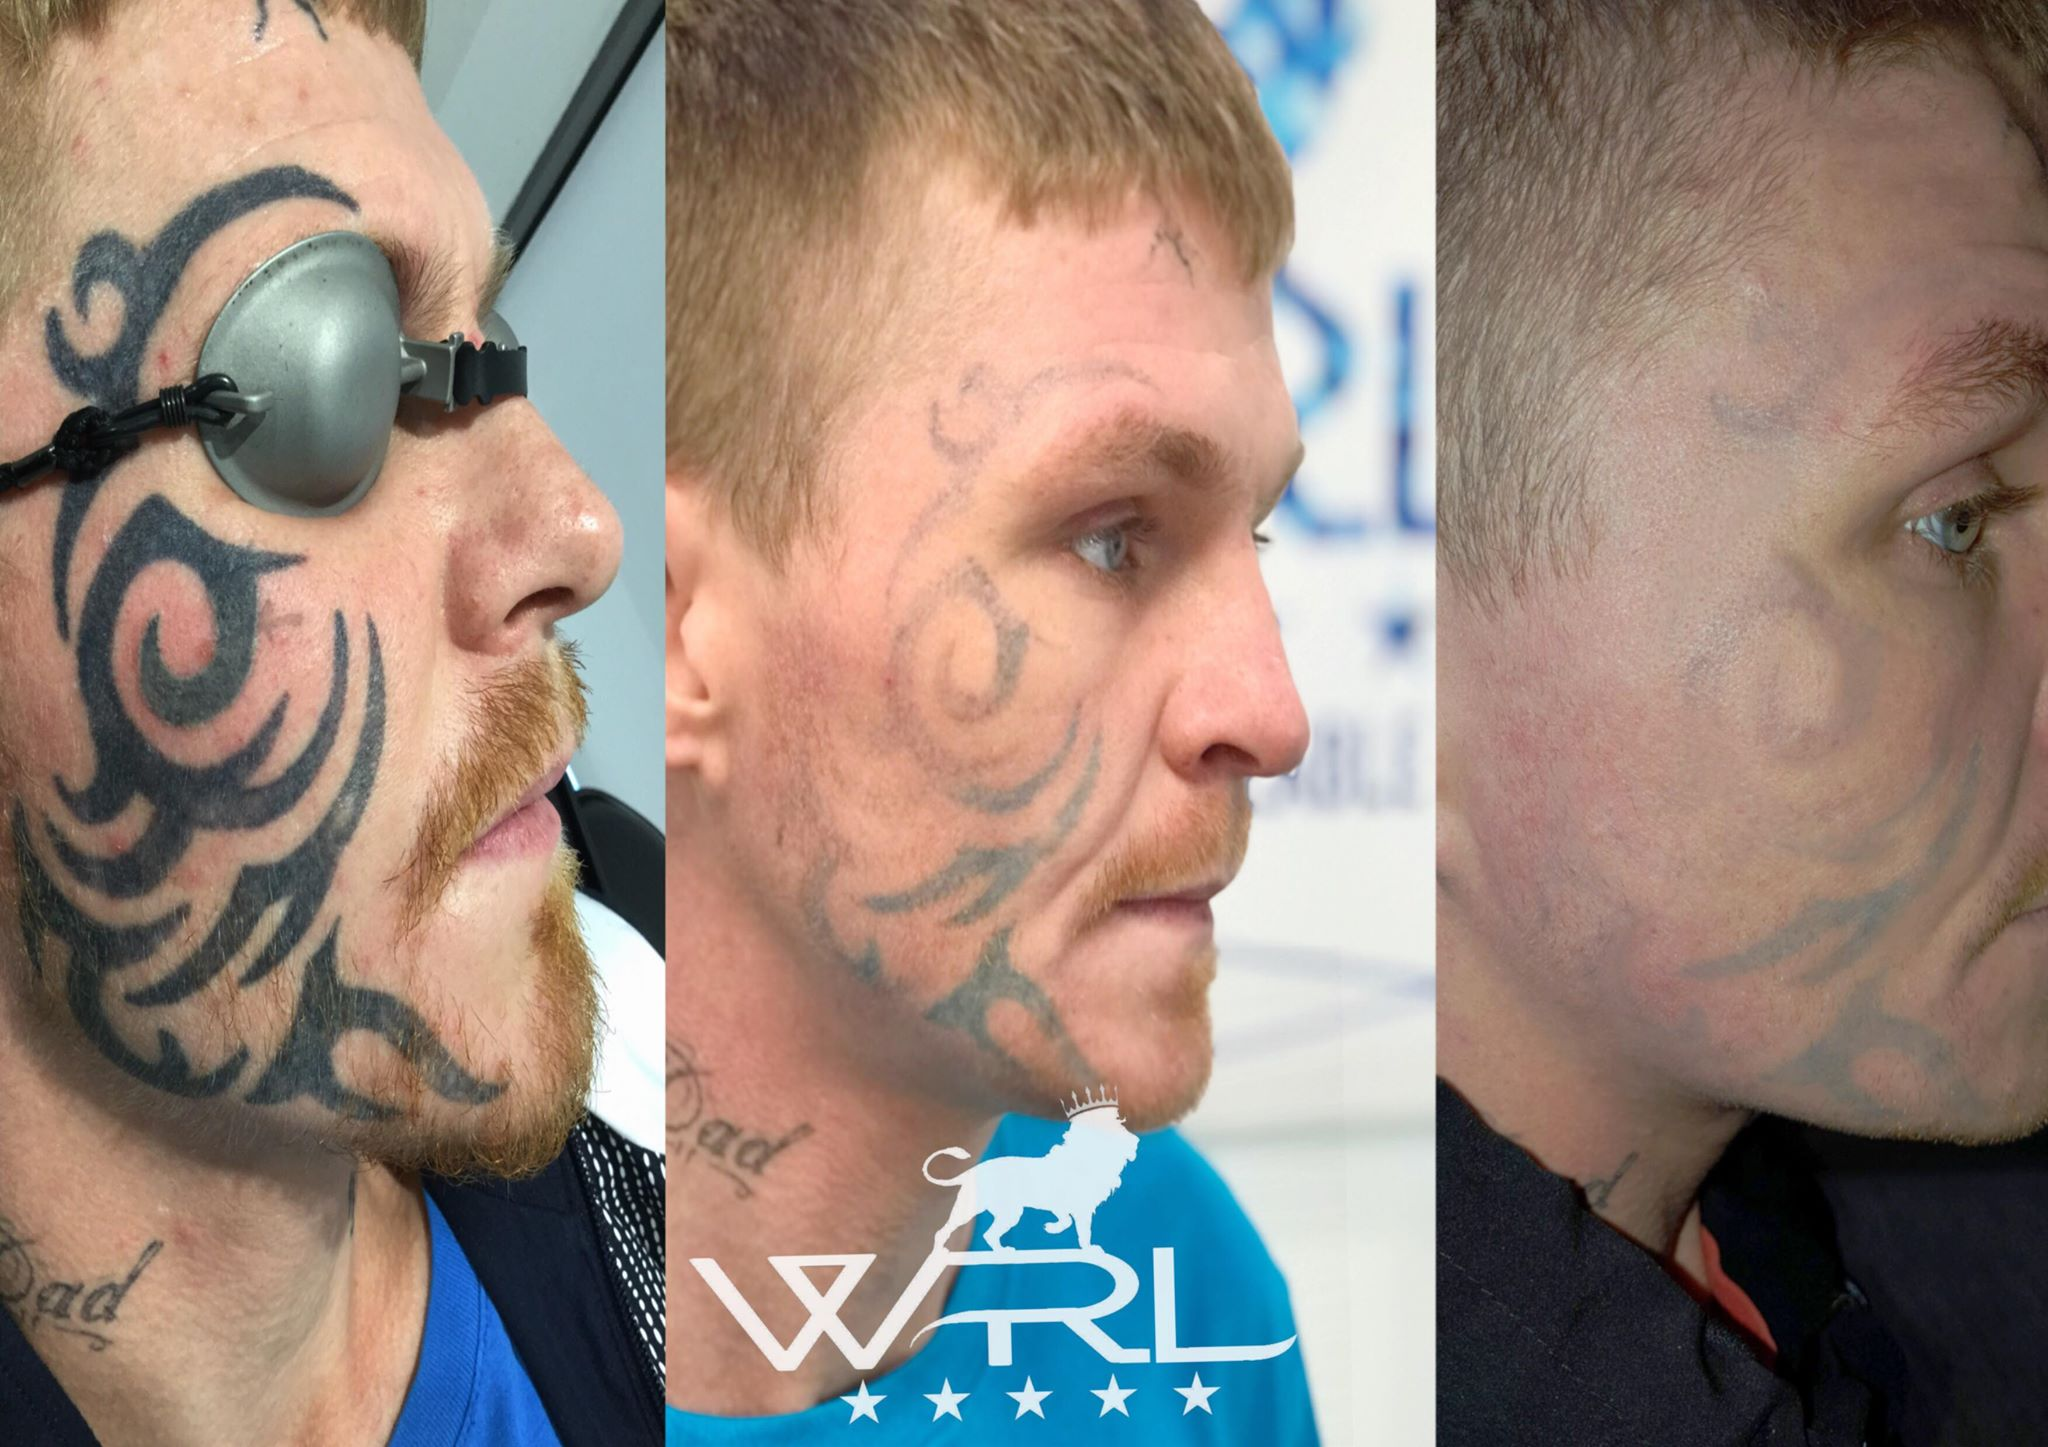 Laser facial tattoo removal whiteroom laser ltd for Tattoo removal lasers